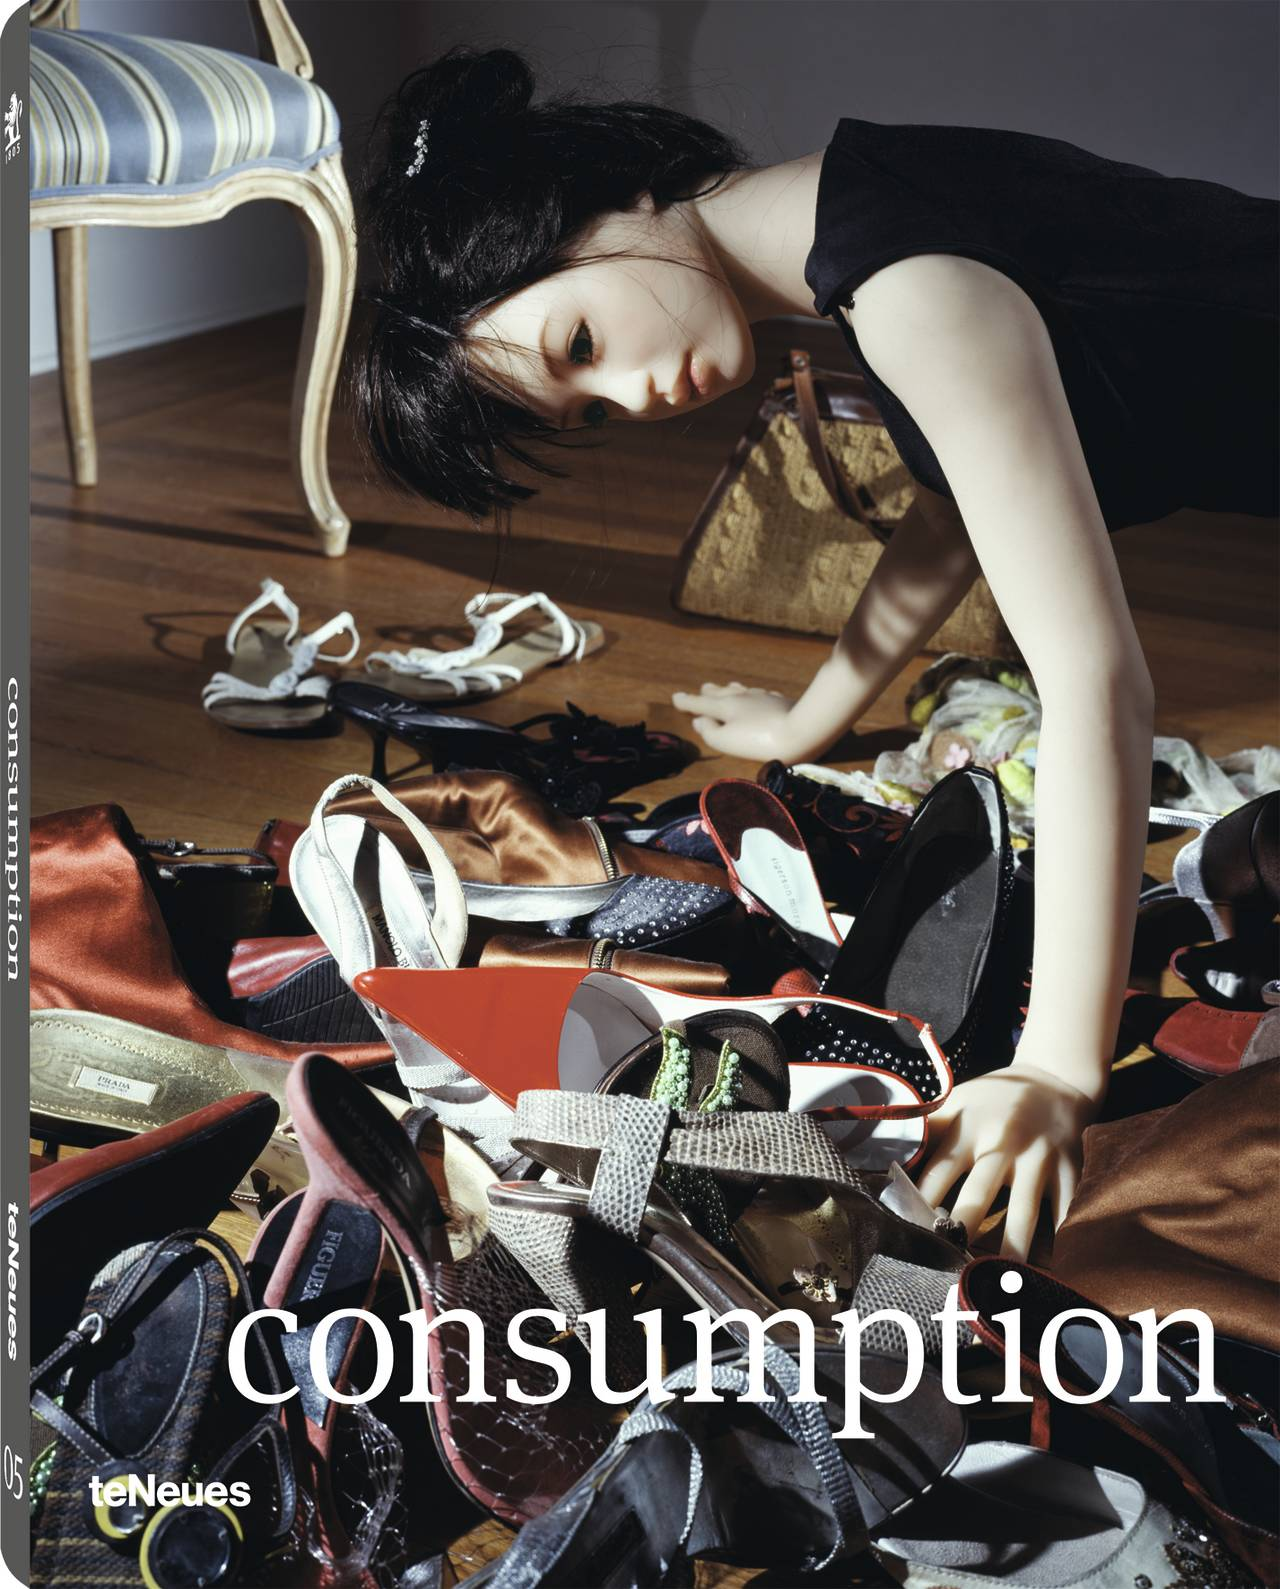 © consumption - Prix Pictet 05, published by teNeues, www.teneues.com. © 2014 courtesy of The Prix Pictet Ltd. www.prixpictet.com, www.pictet.com, Photo © Laurie Simmons, The Love Doll / Day 26 (Shoes), 2010, Cornwall, Connecticut, United States, Series: The Love Doll